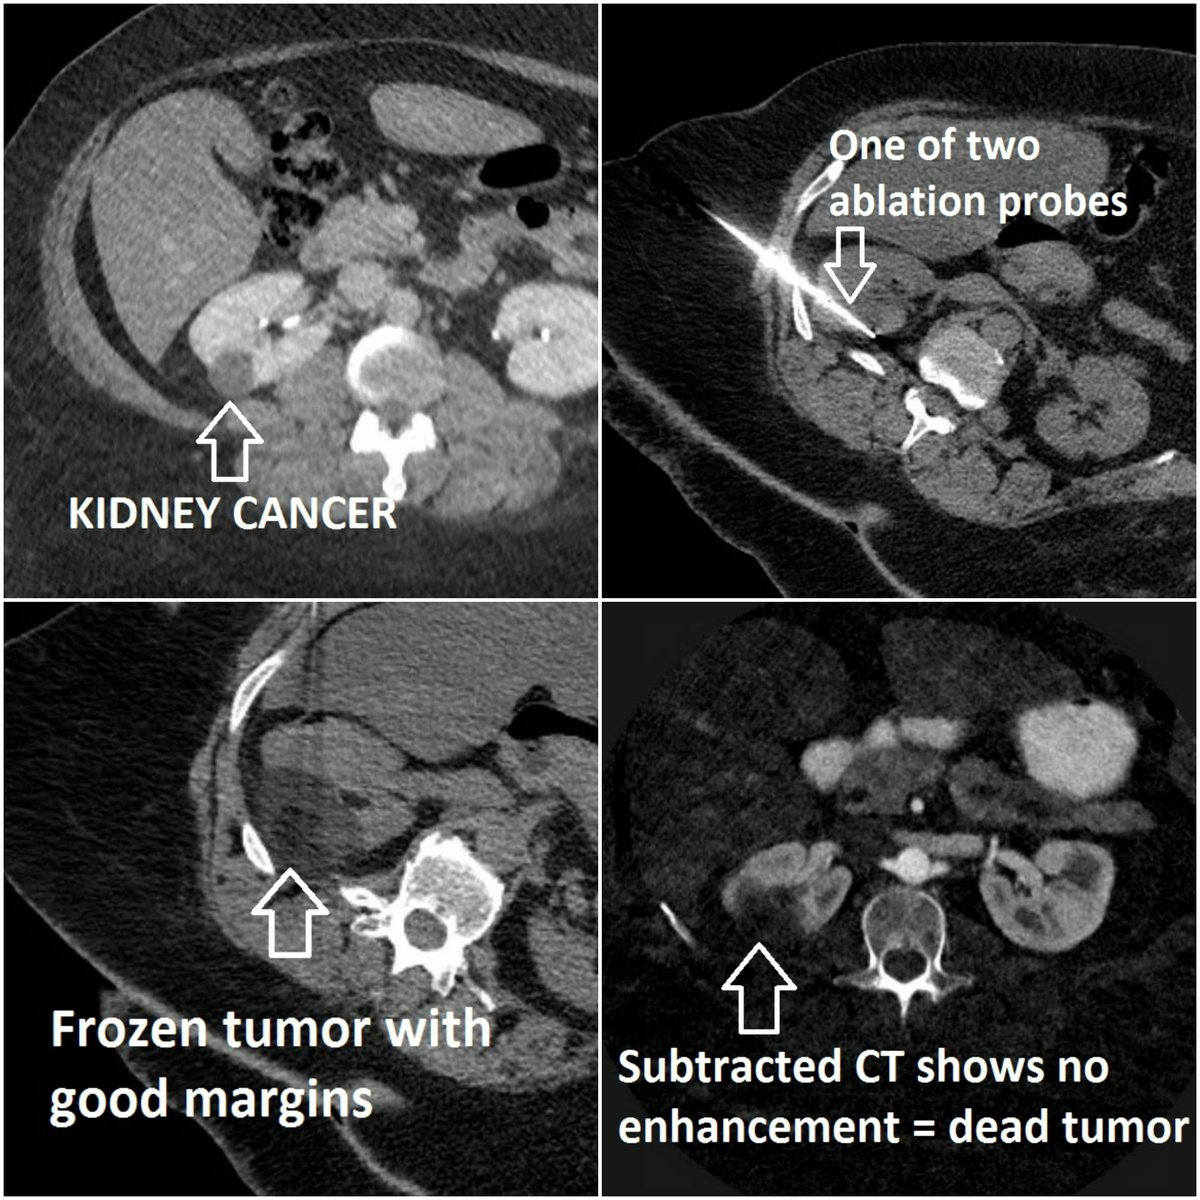 Some more follow up from interventional radiology (#IRad) killing #KidneyCancer  This #patient did not want #surgery so her #cancer was treated w/ a minimally-invasive approach @uab_ir. We were able to make #deadtumor using @BTGIO probes &amp; send the patient home the same day!<br>http://pic.twitter.com/HTvLFUIFLC